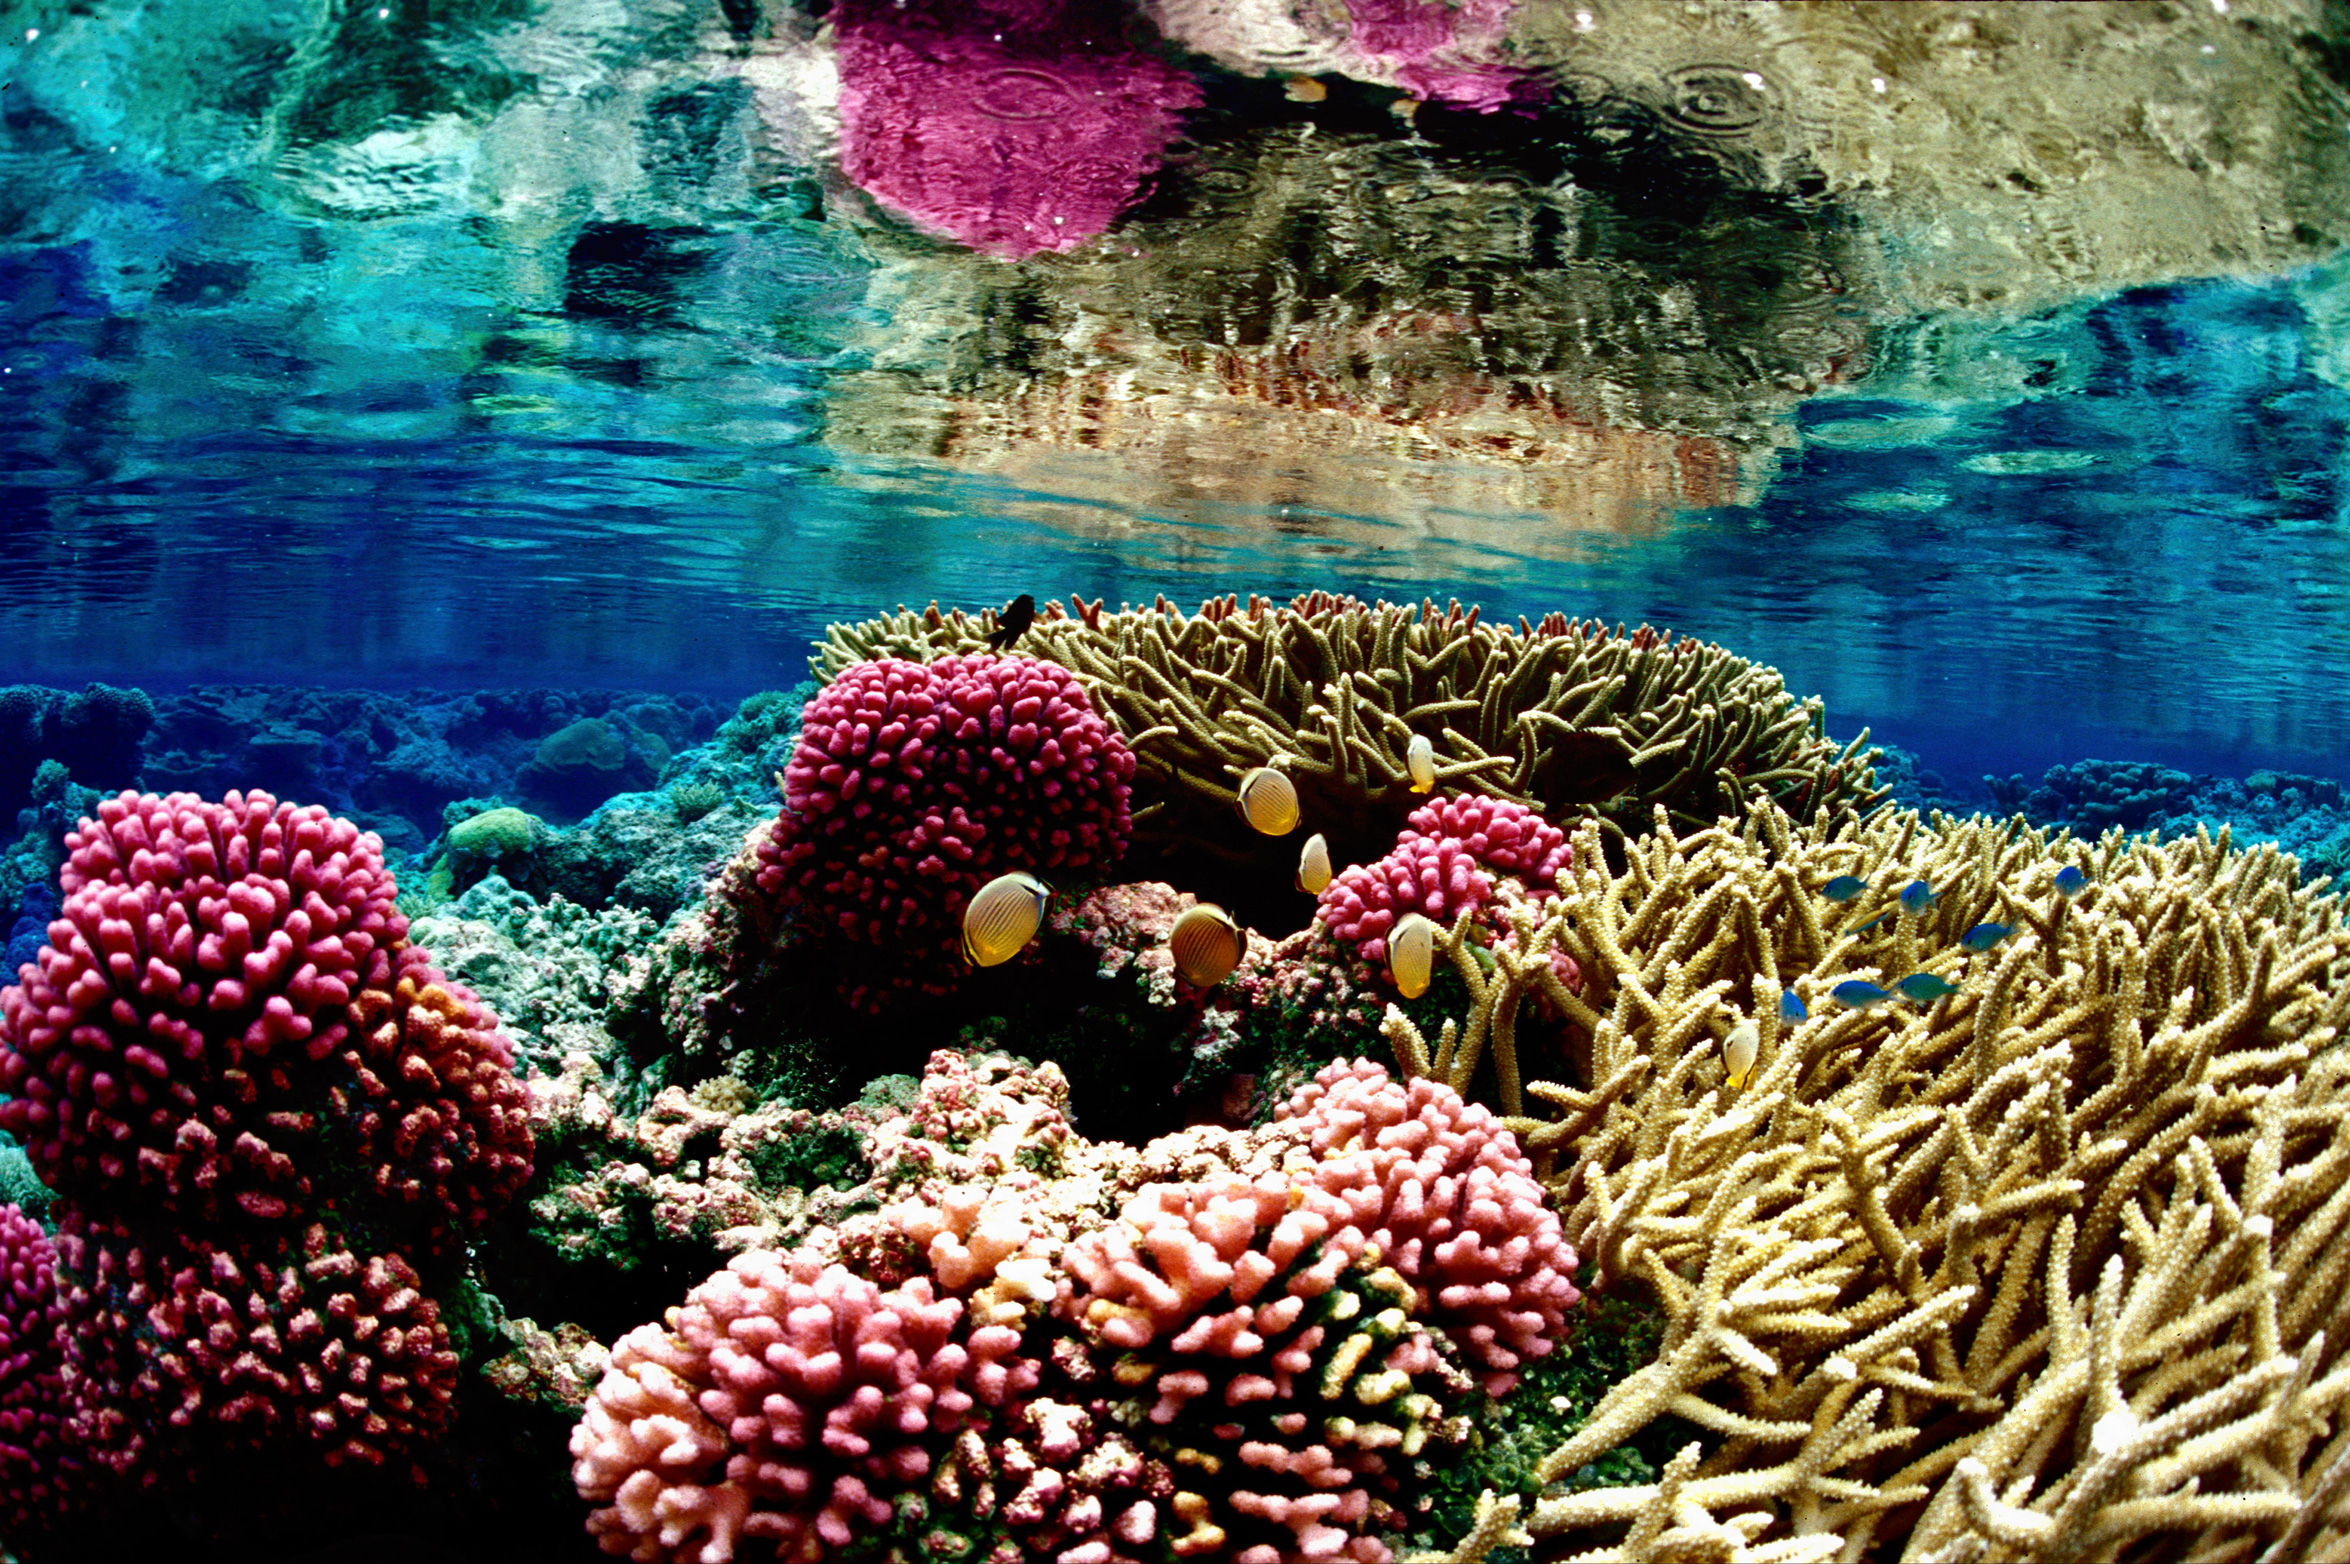 Sewage Pollution A Significant Threat To Coral Reefs